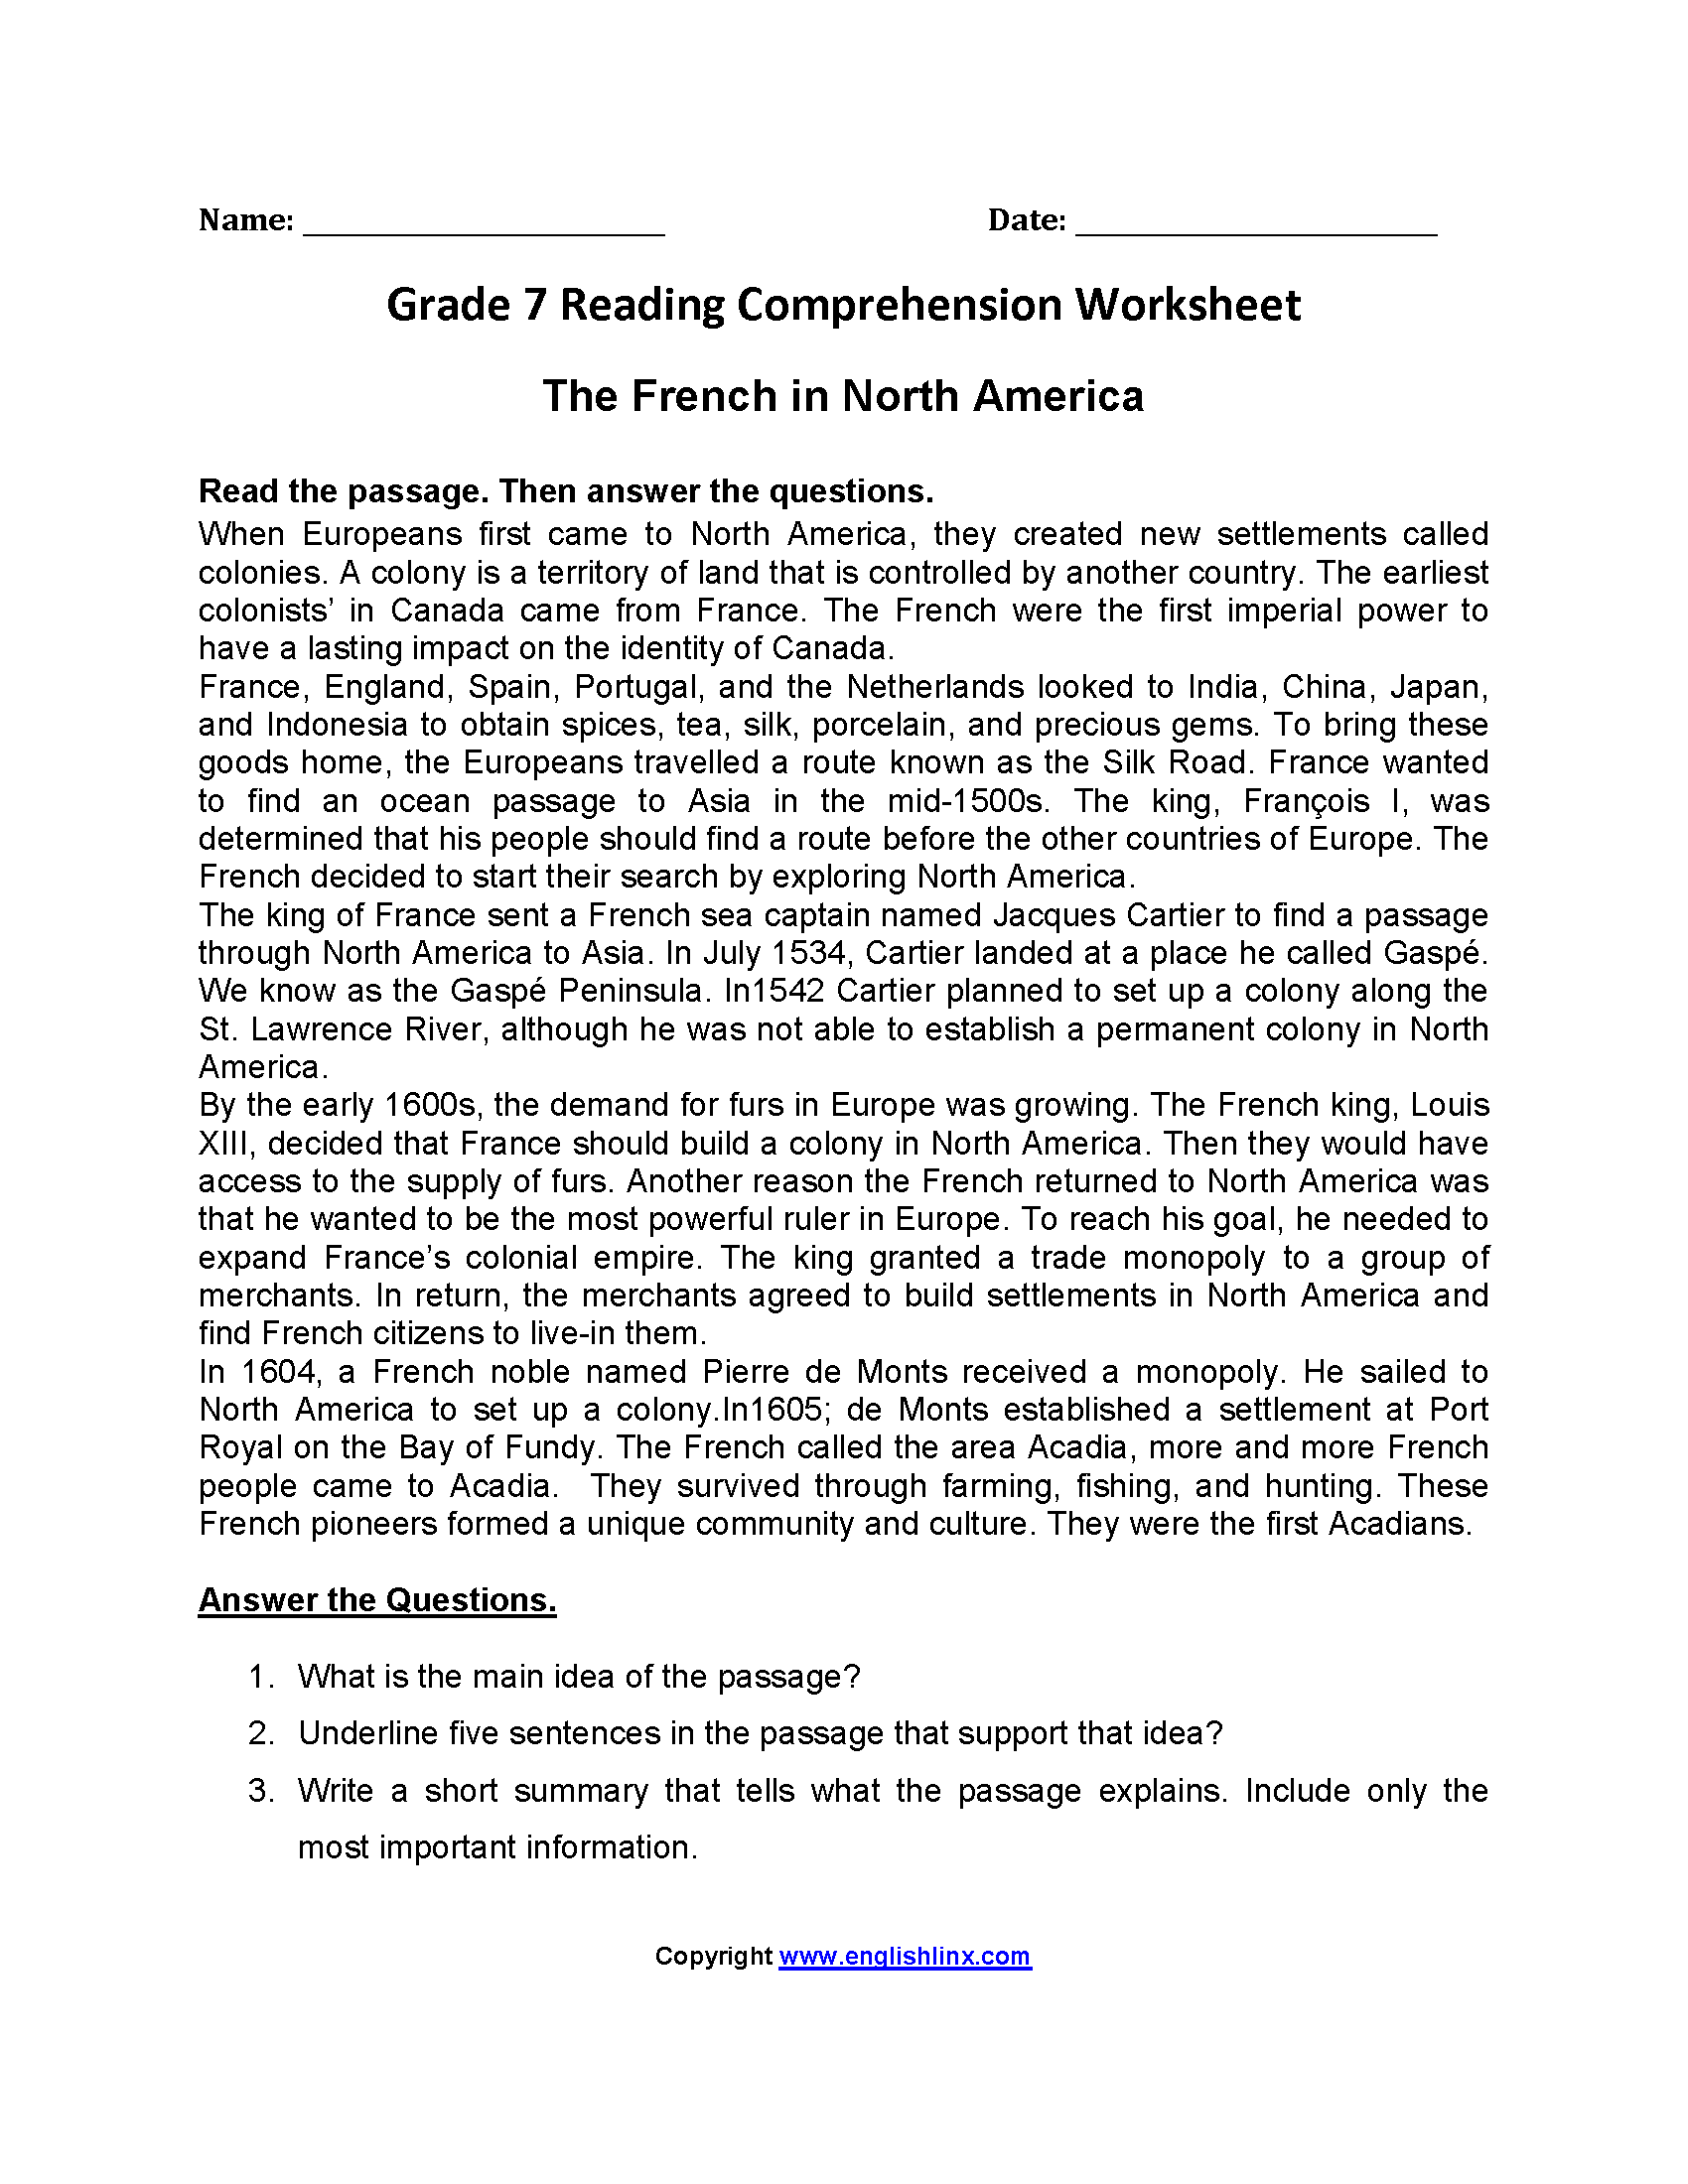 Grade 7 Reading Comprehension Worksheets